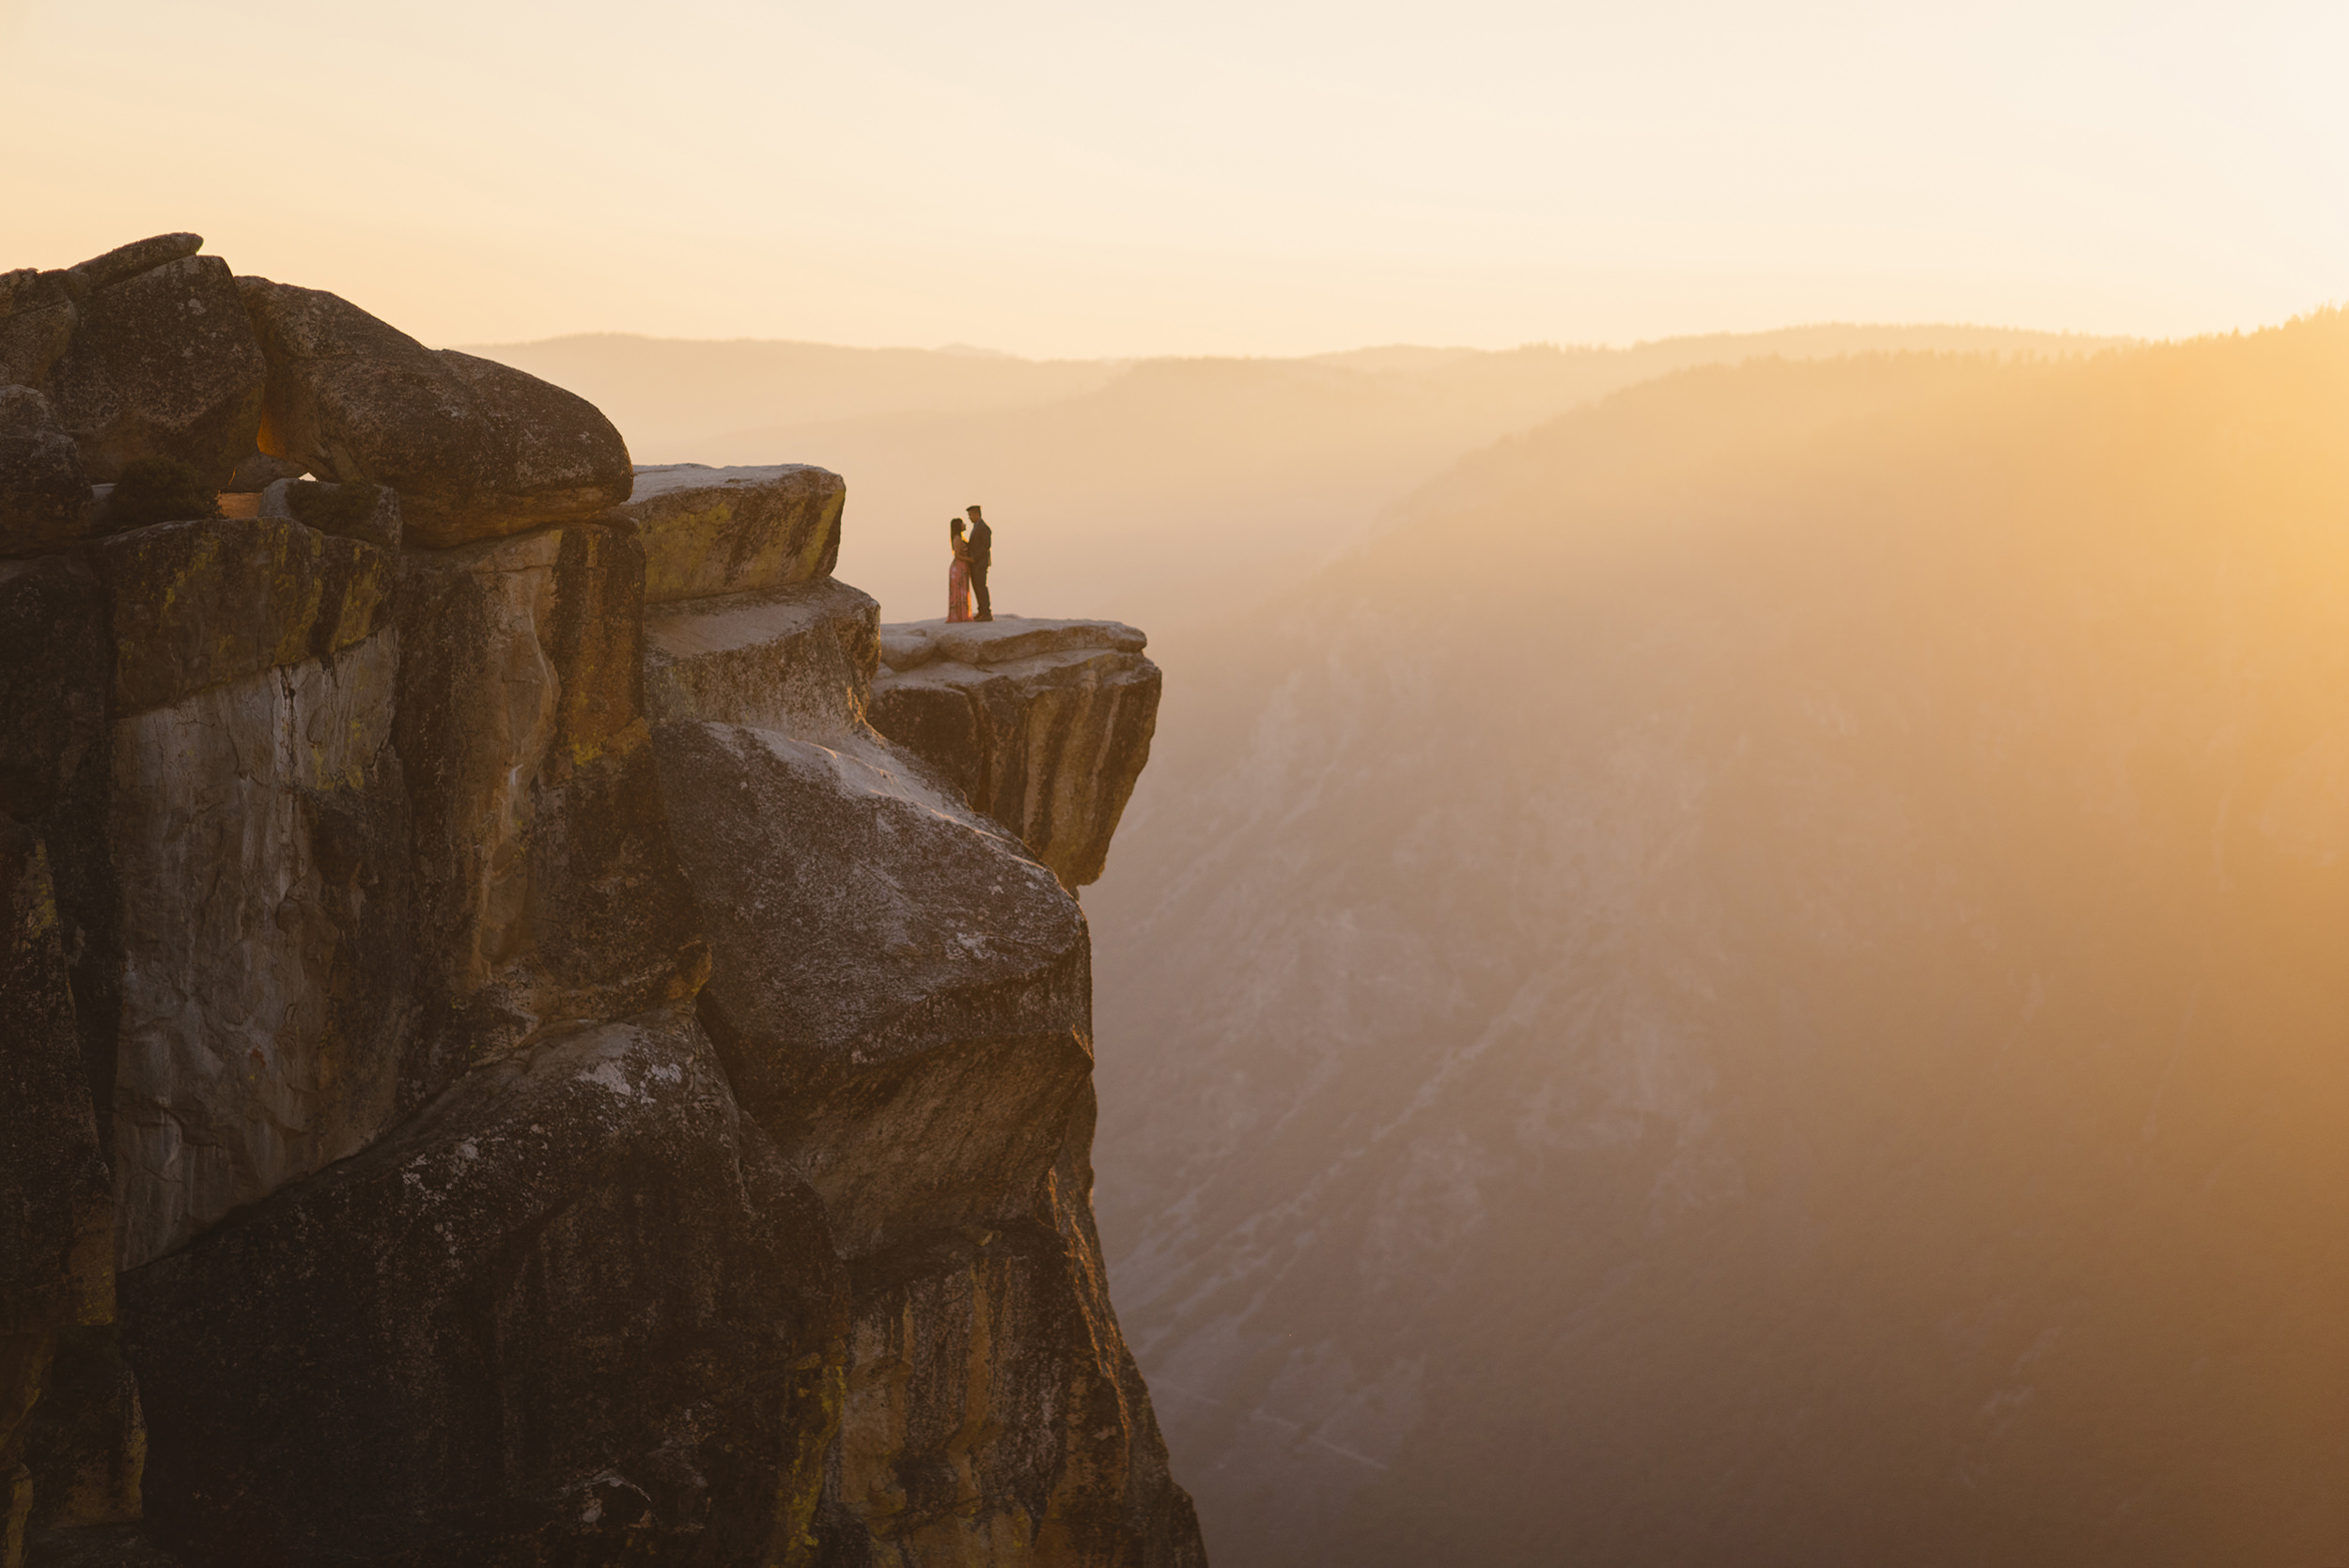 Taft Point Yosemite Destination Elopement Couples Photographer Colby and Jess colbyandjess.com